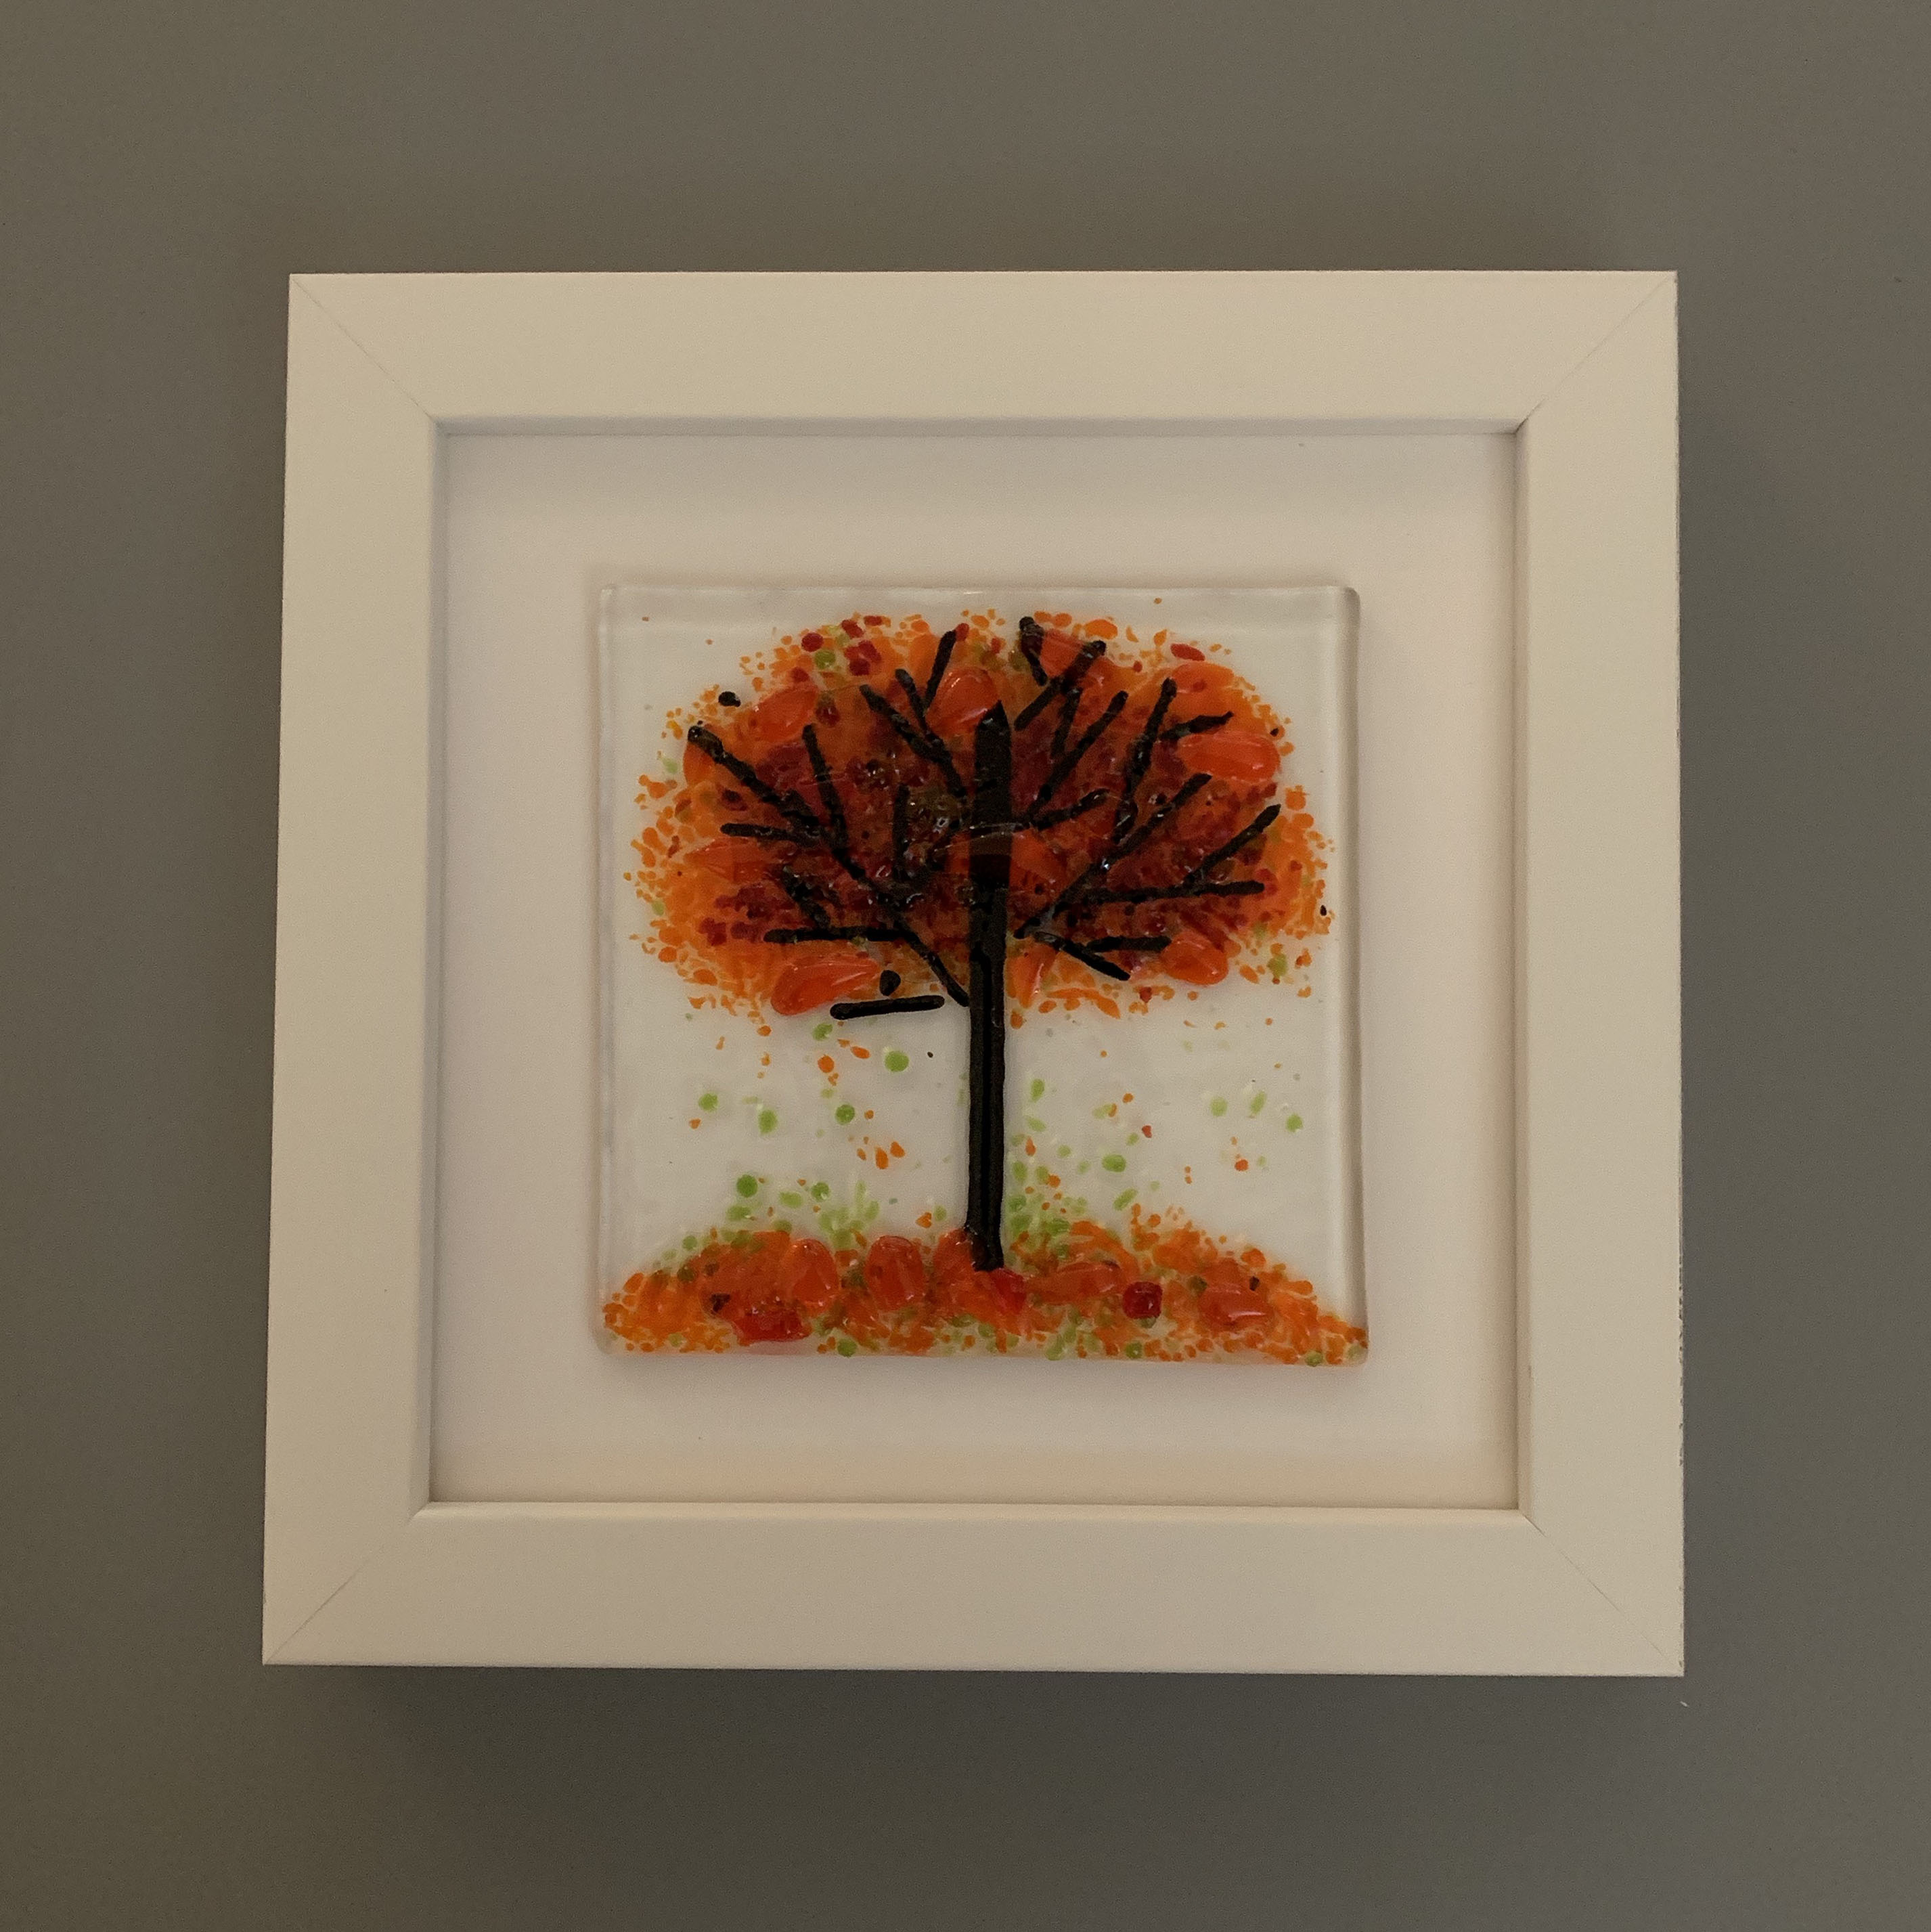 Handmade Glass Autumn Orange Tree Wall Art in White Picture Frame